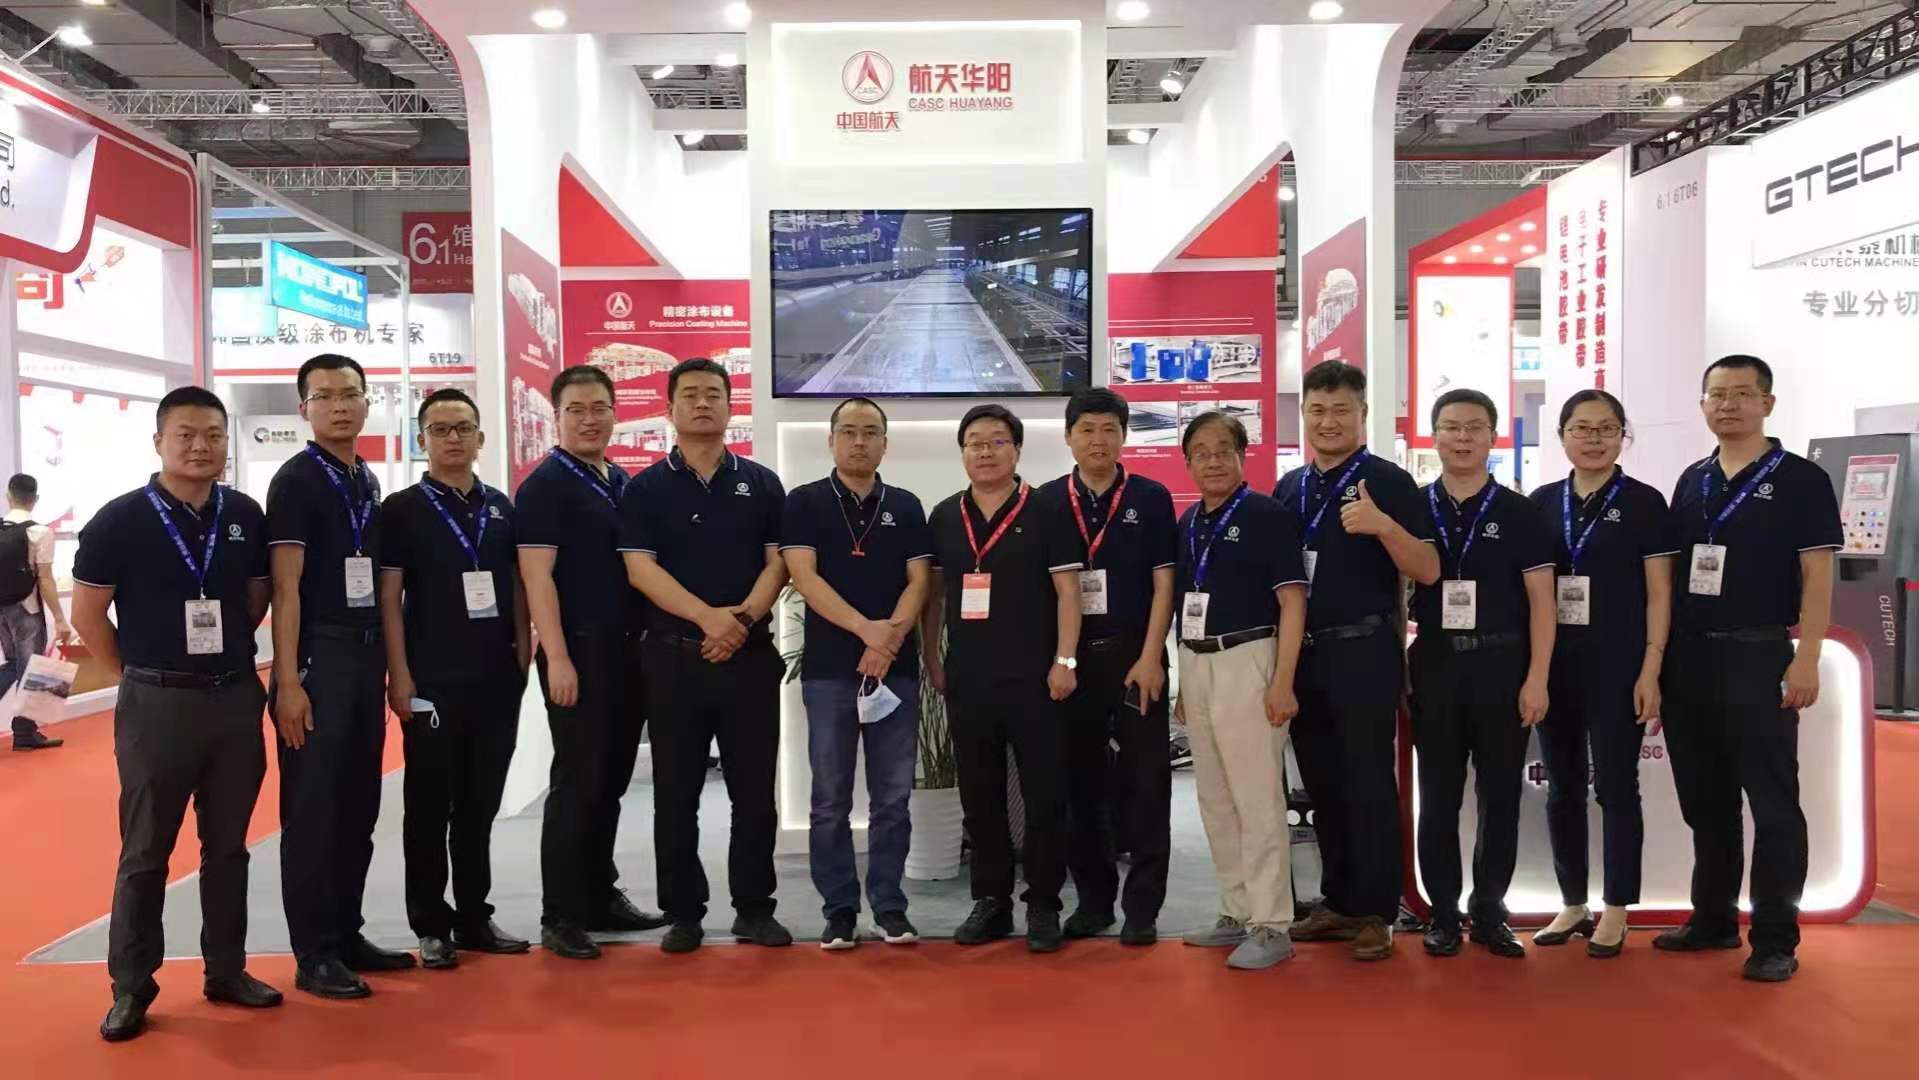 Huayang Provides Coating Solution in APFE 2021